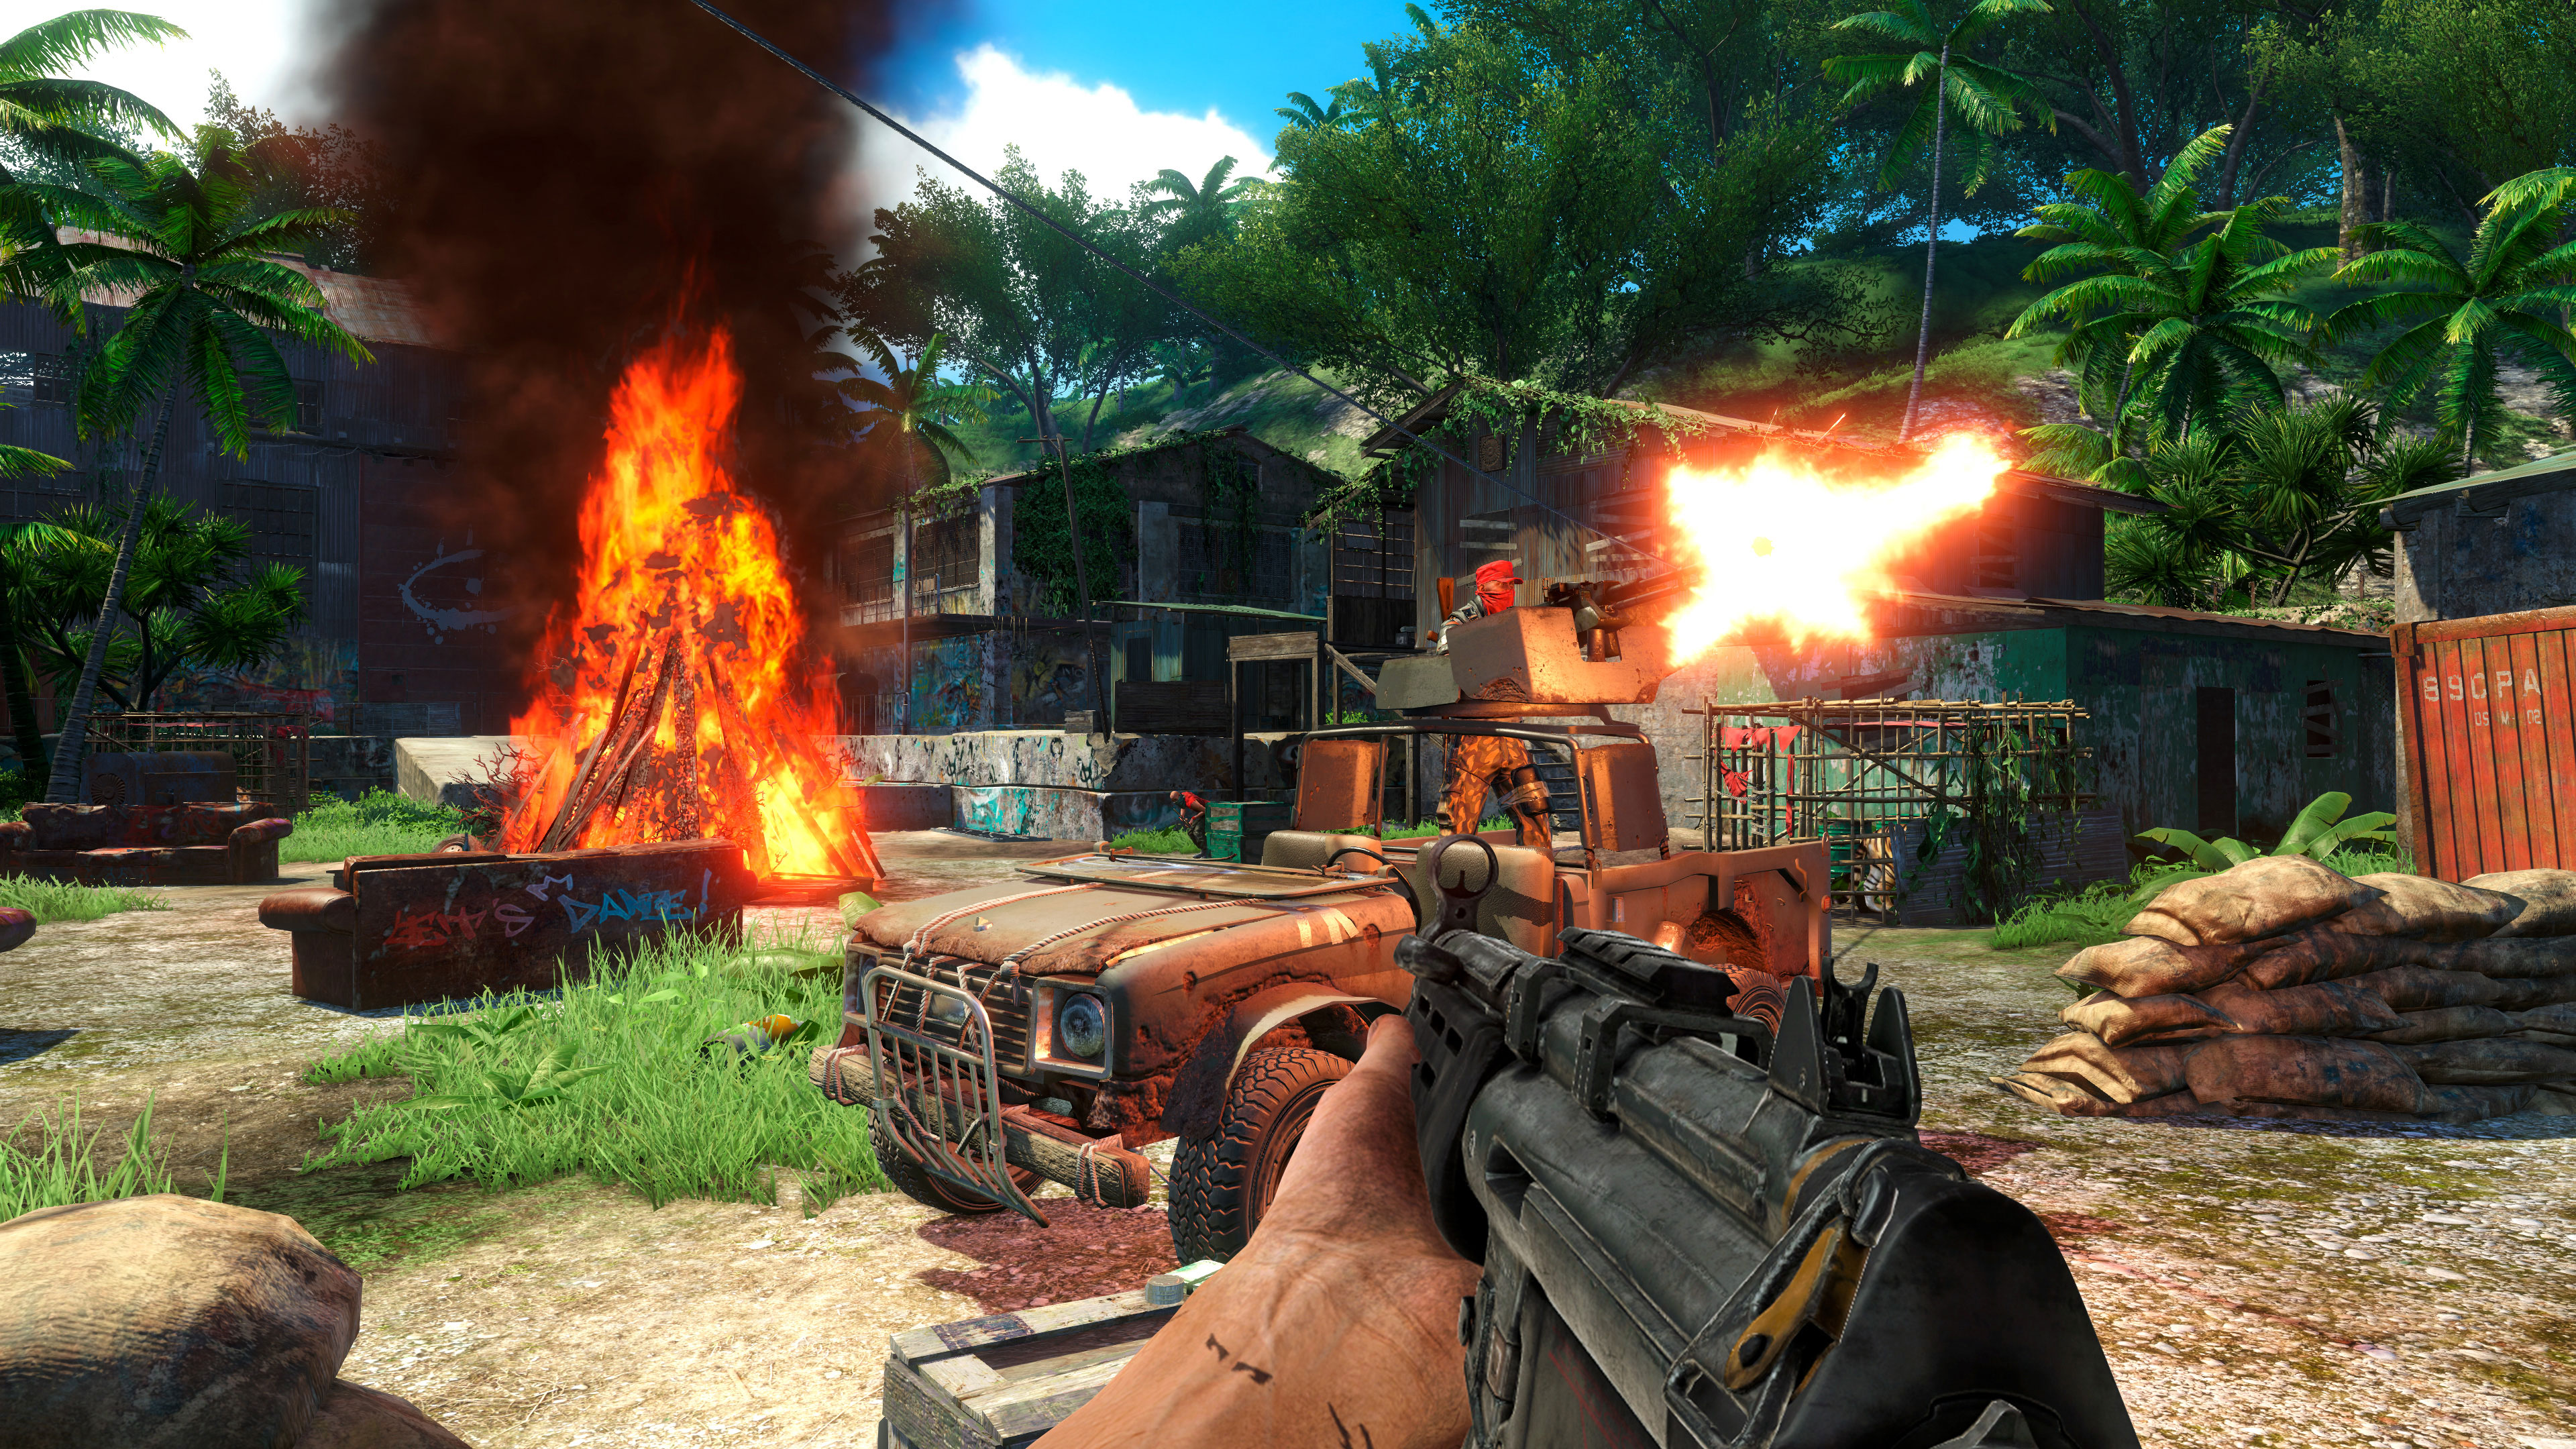 5 Games Like Far Cry 3 for Android – Games Like